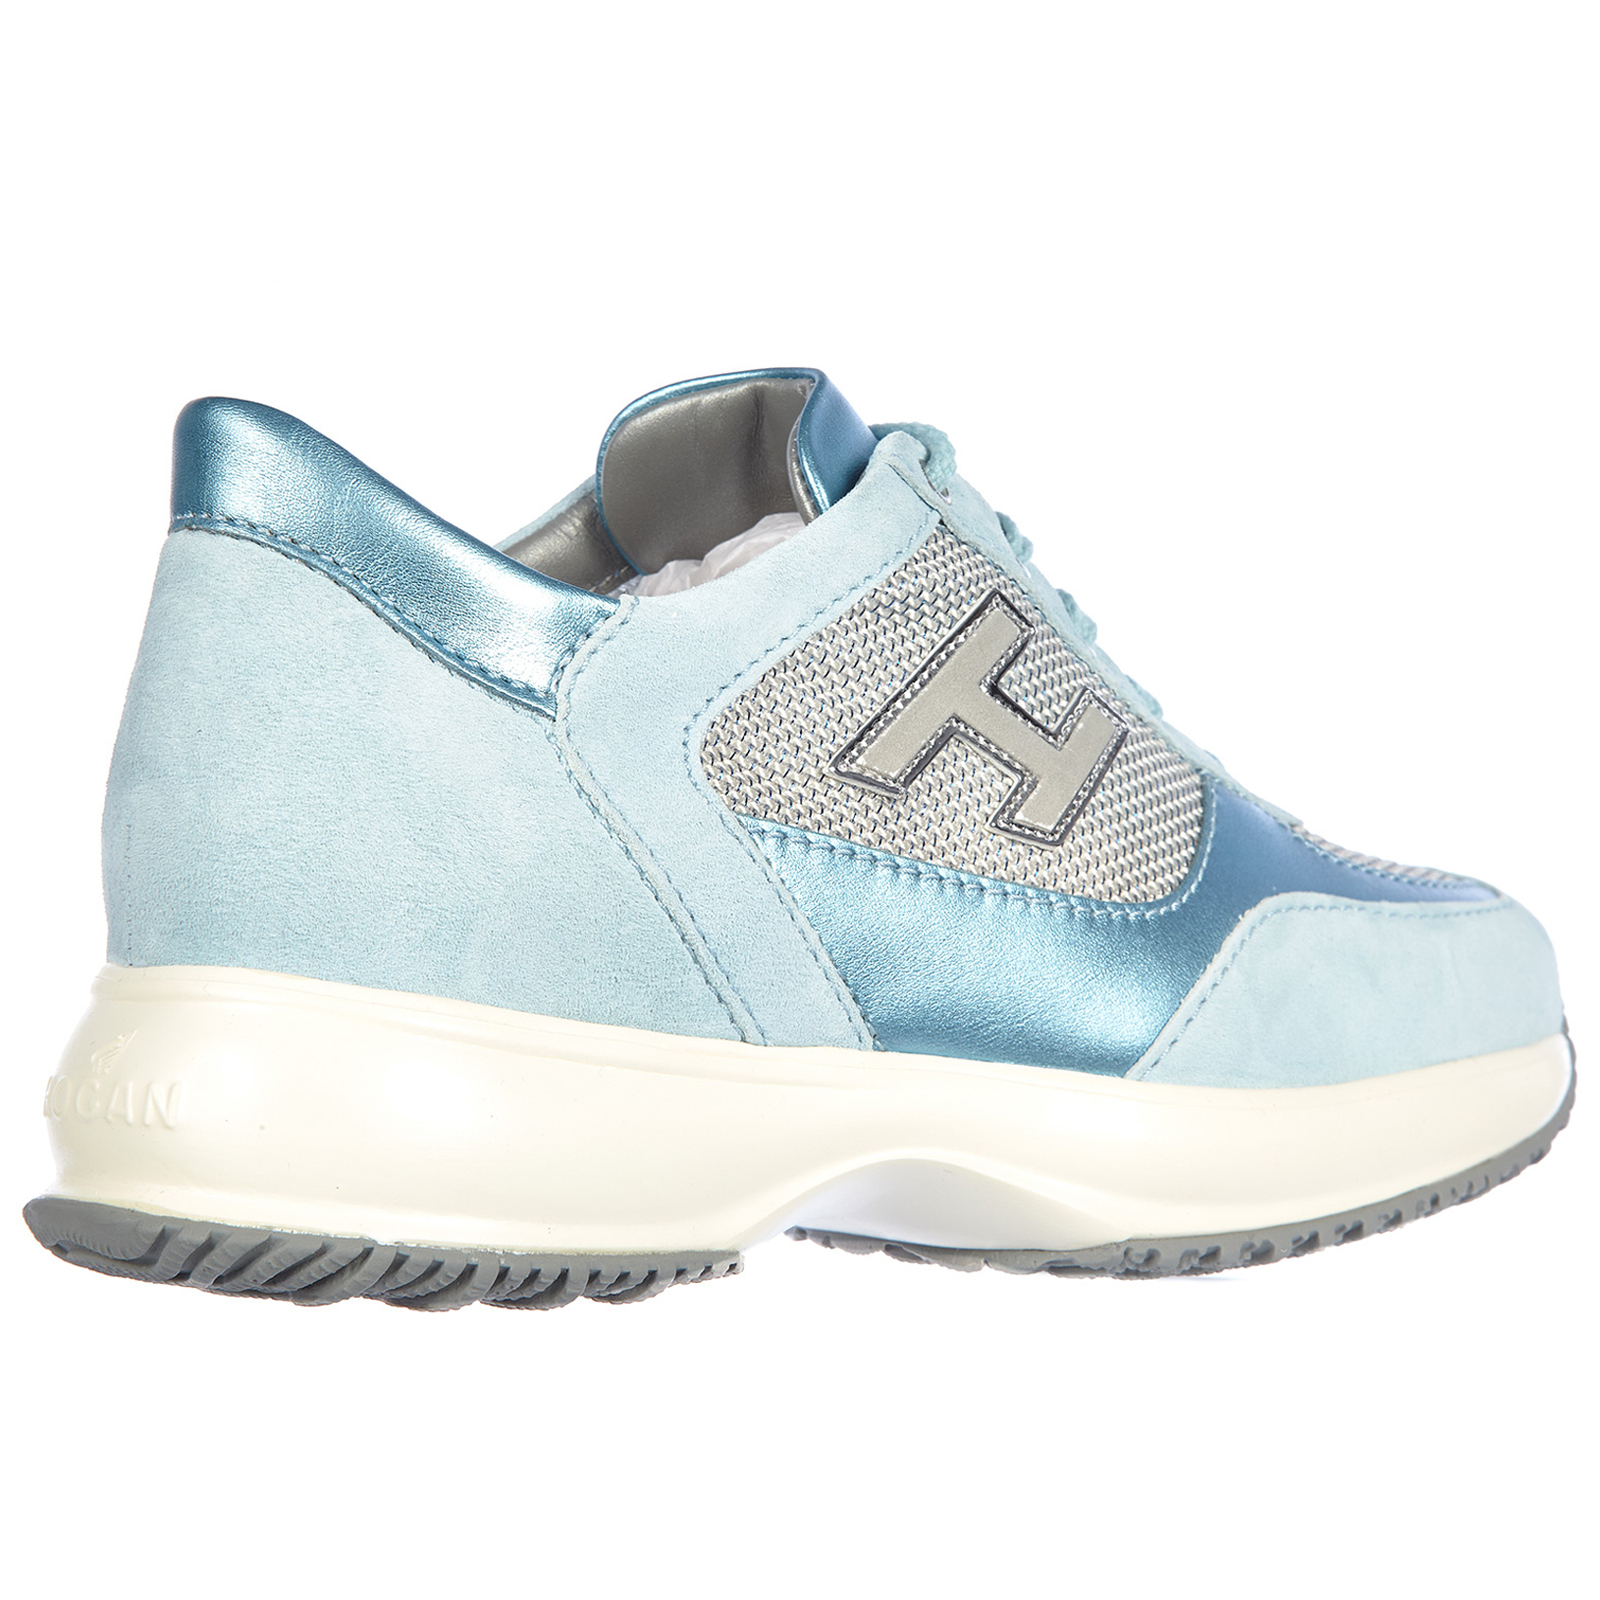 b19270f6fb636 Girls shoes baby child sneakers camoscio interactive h flock